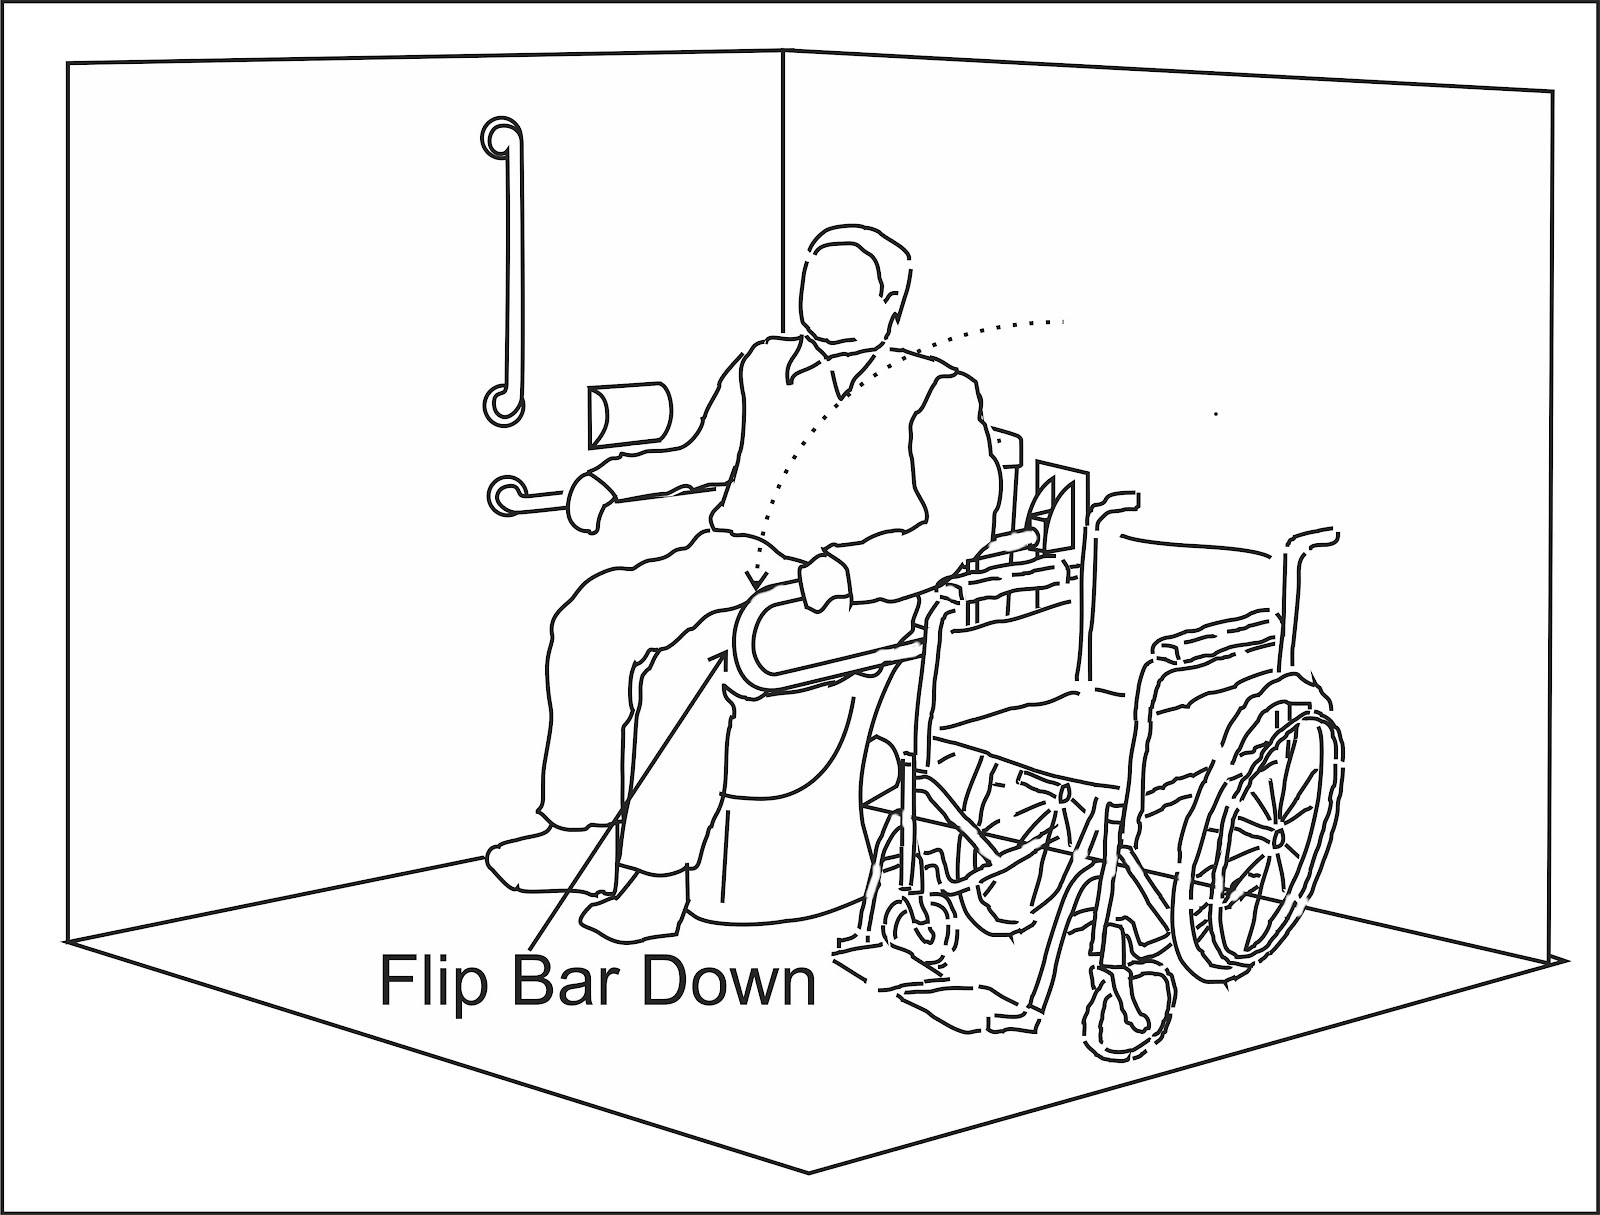 1600x1215 Wheelchair Access Penang (Wapenang) Toilet (Wc) For Disabled People